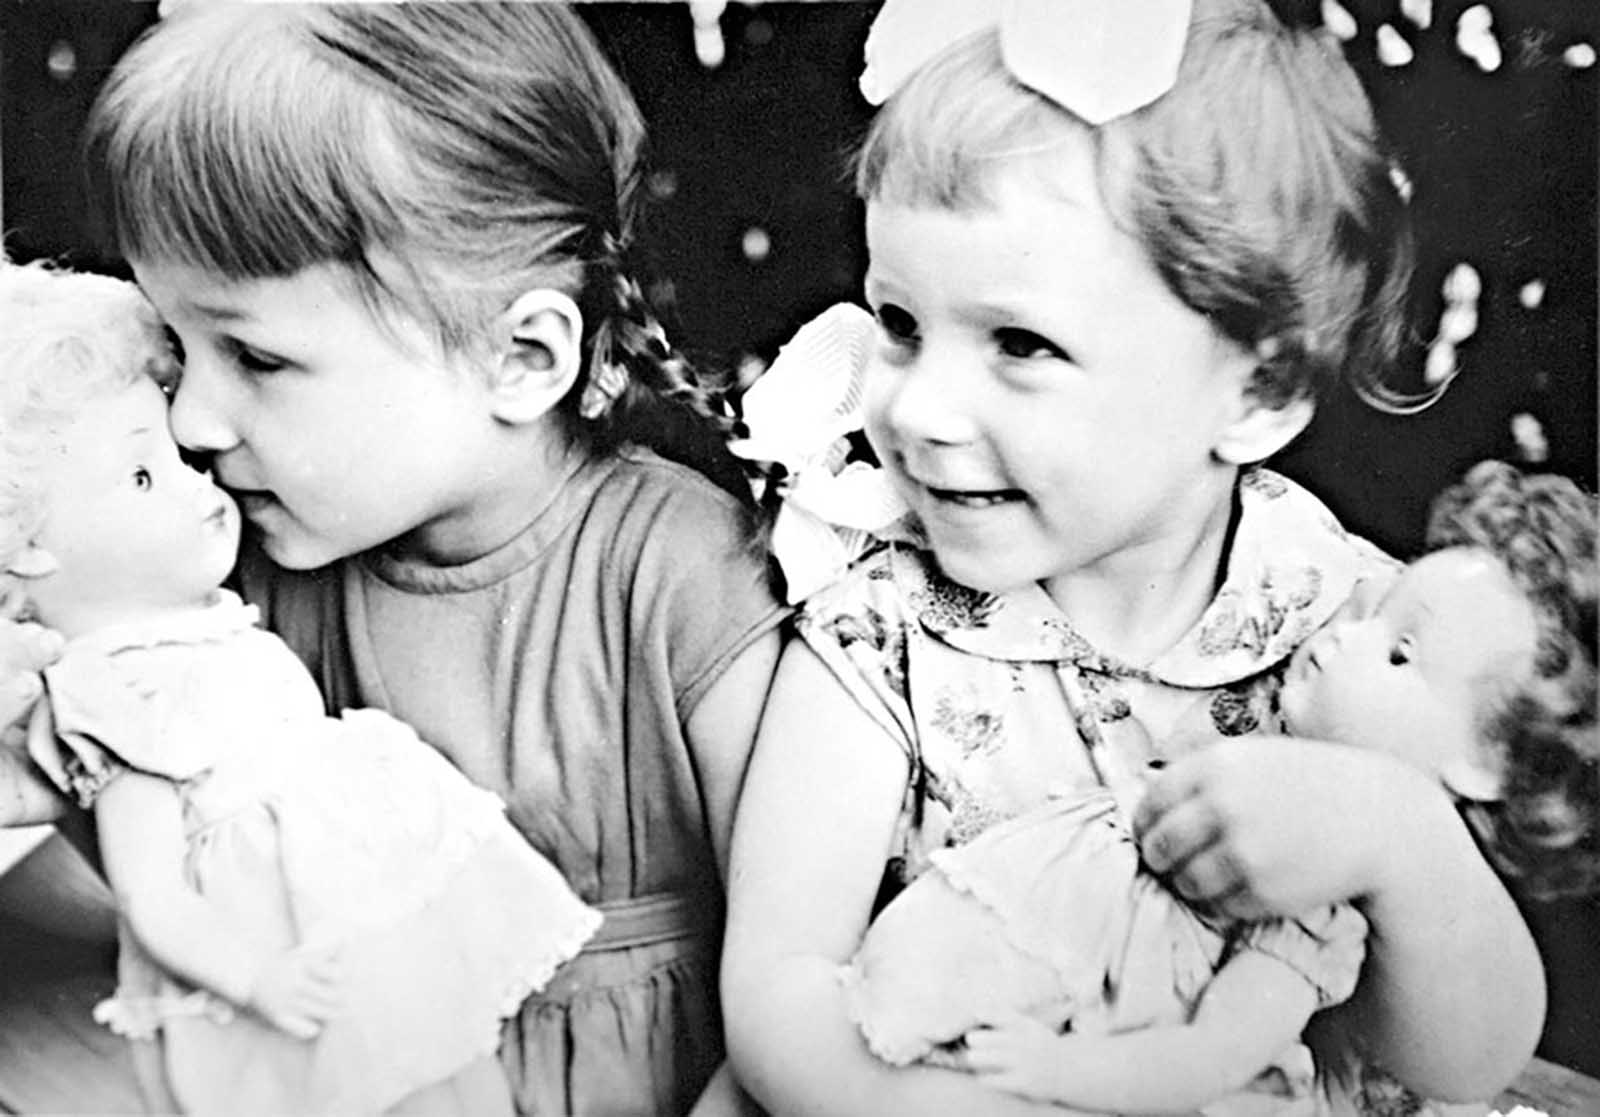 Yeltsin's daughters in 1965. Yelena and Tatyana, born in 1957 and 1960.